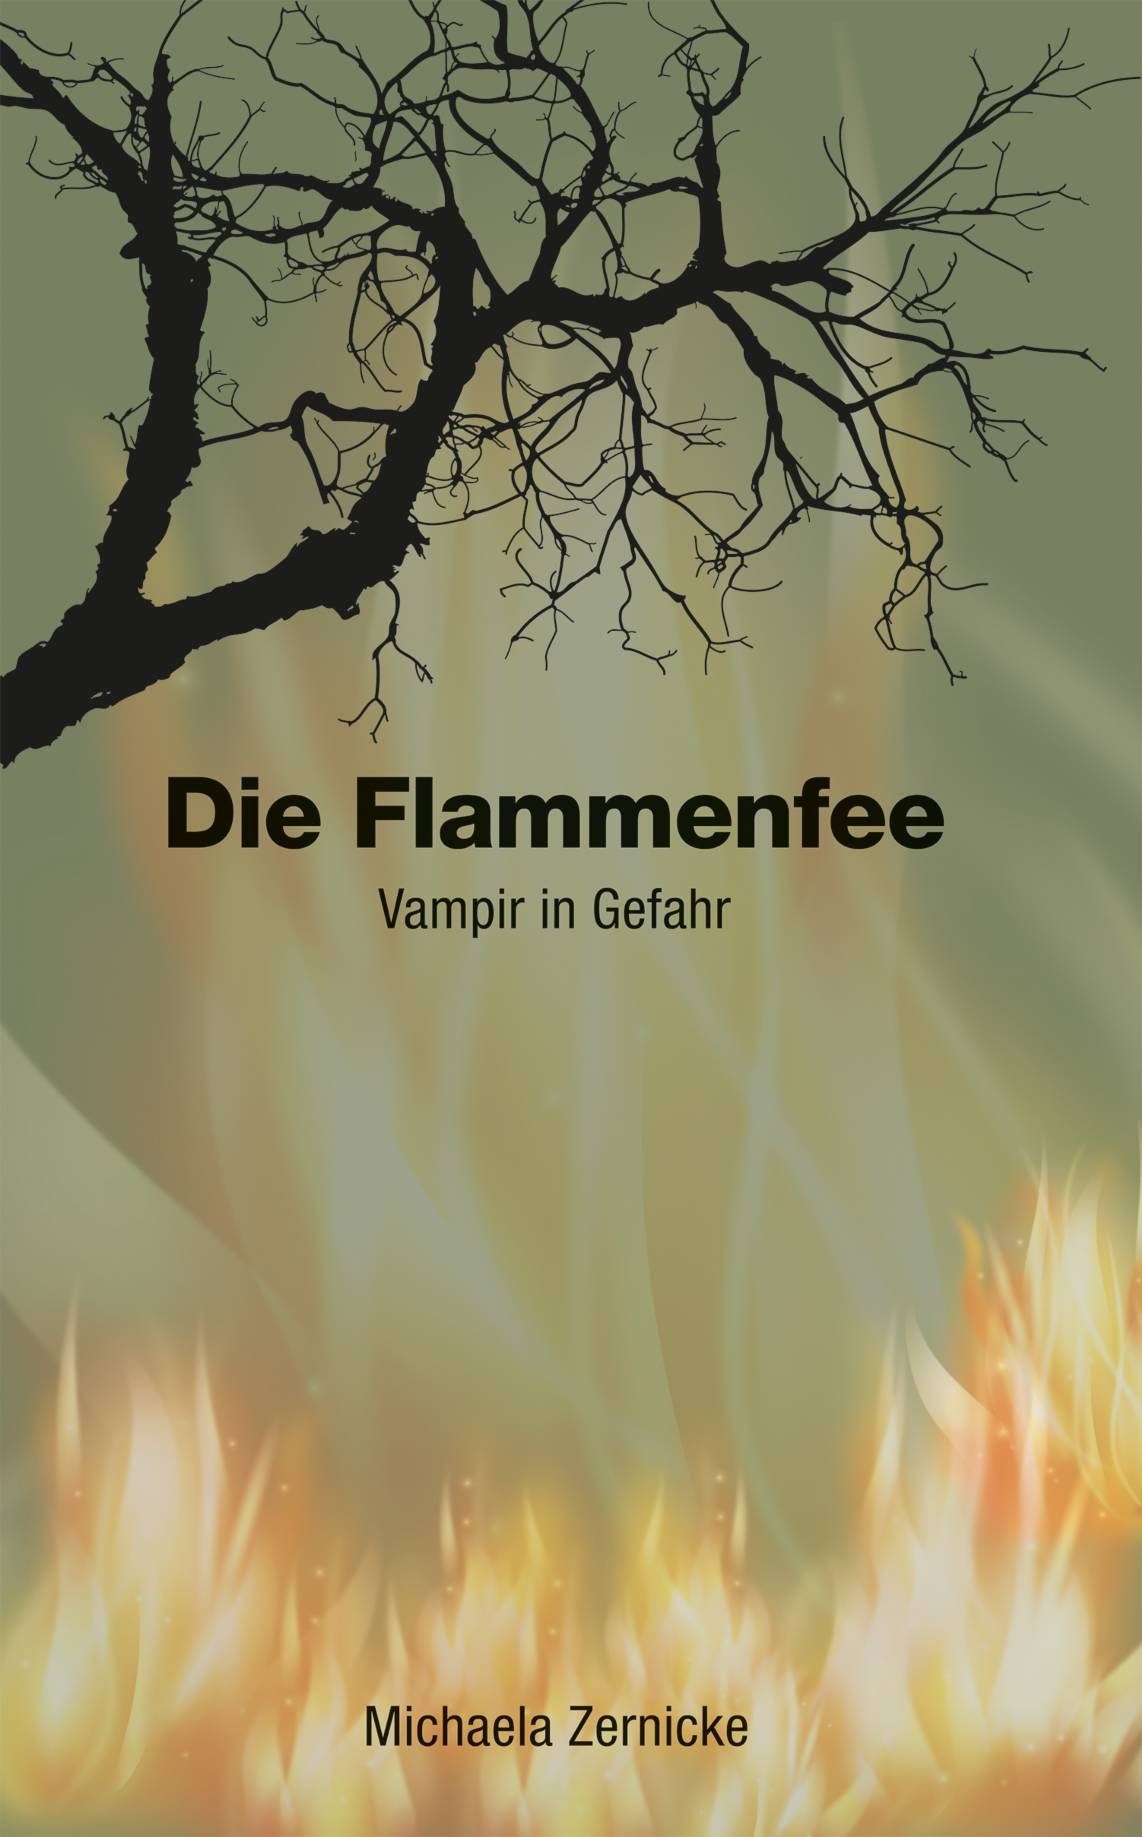 Die_Flammenfee_2_Cover_E-Book-1 JPG